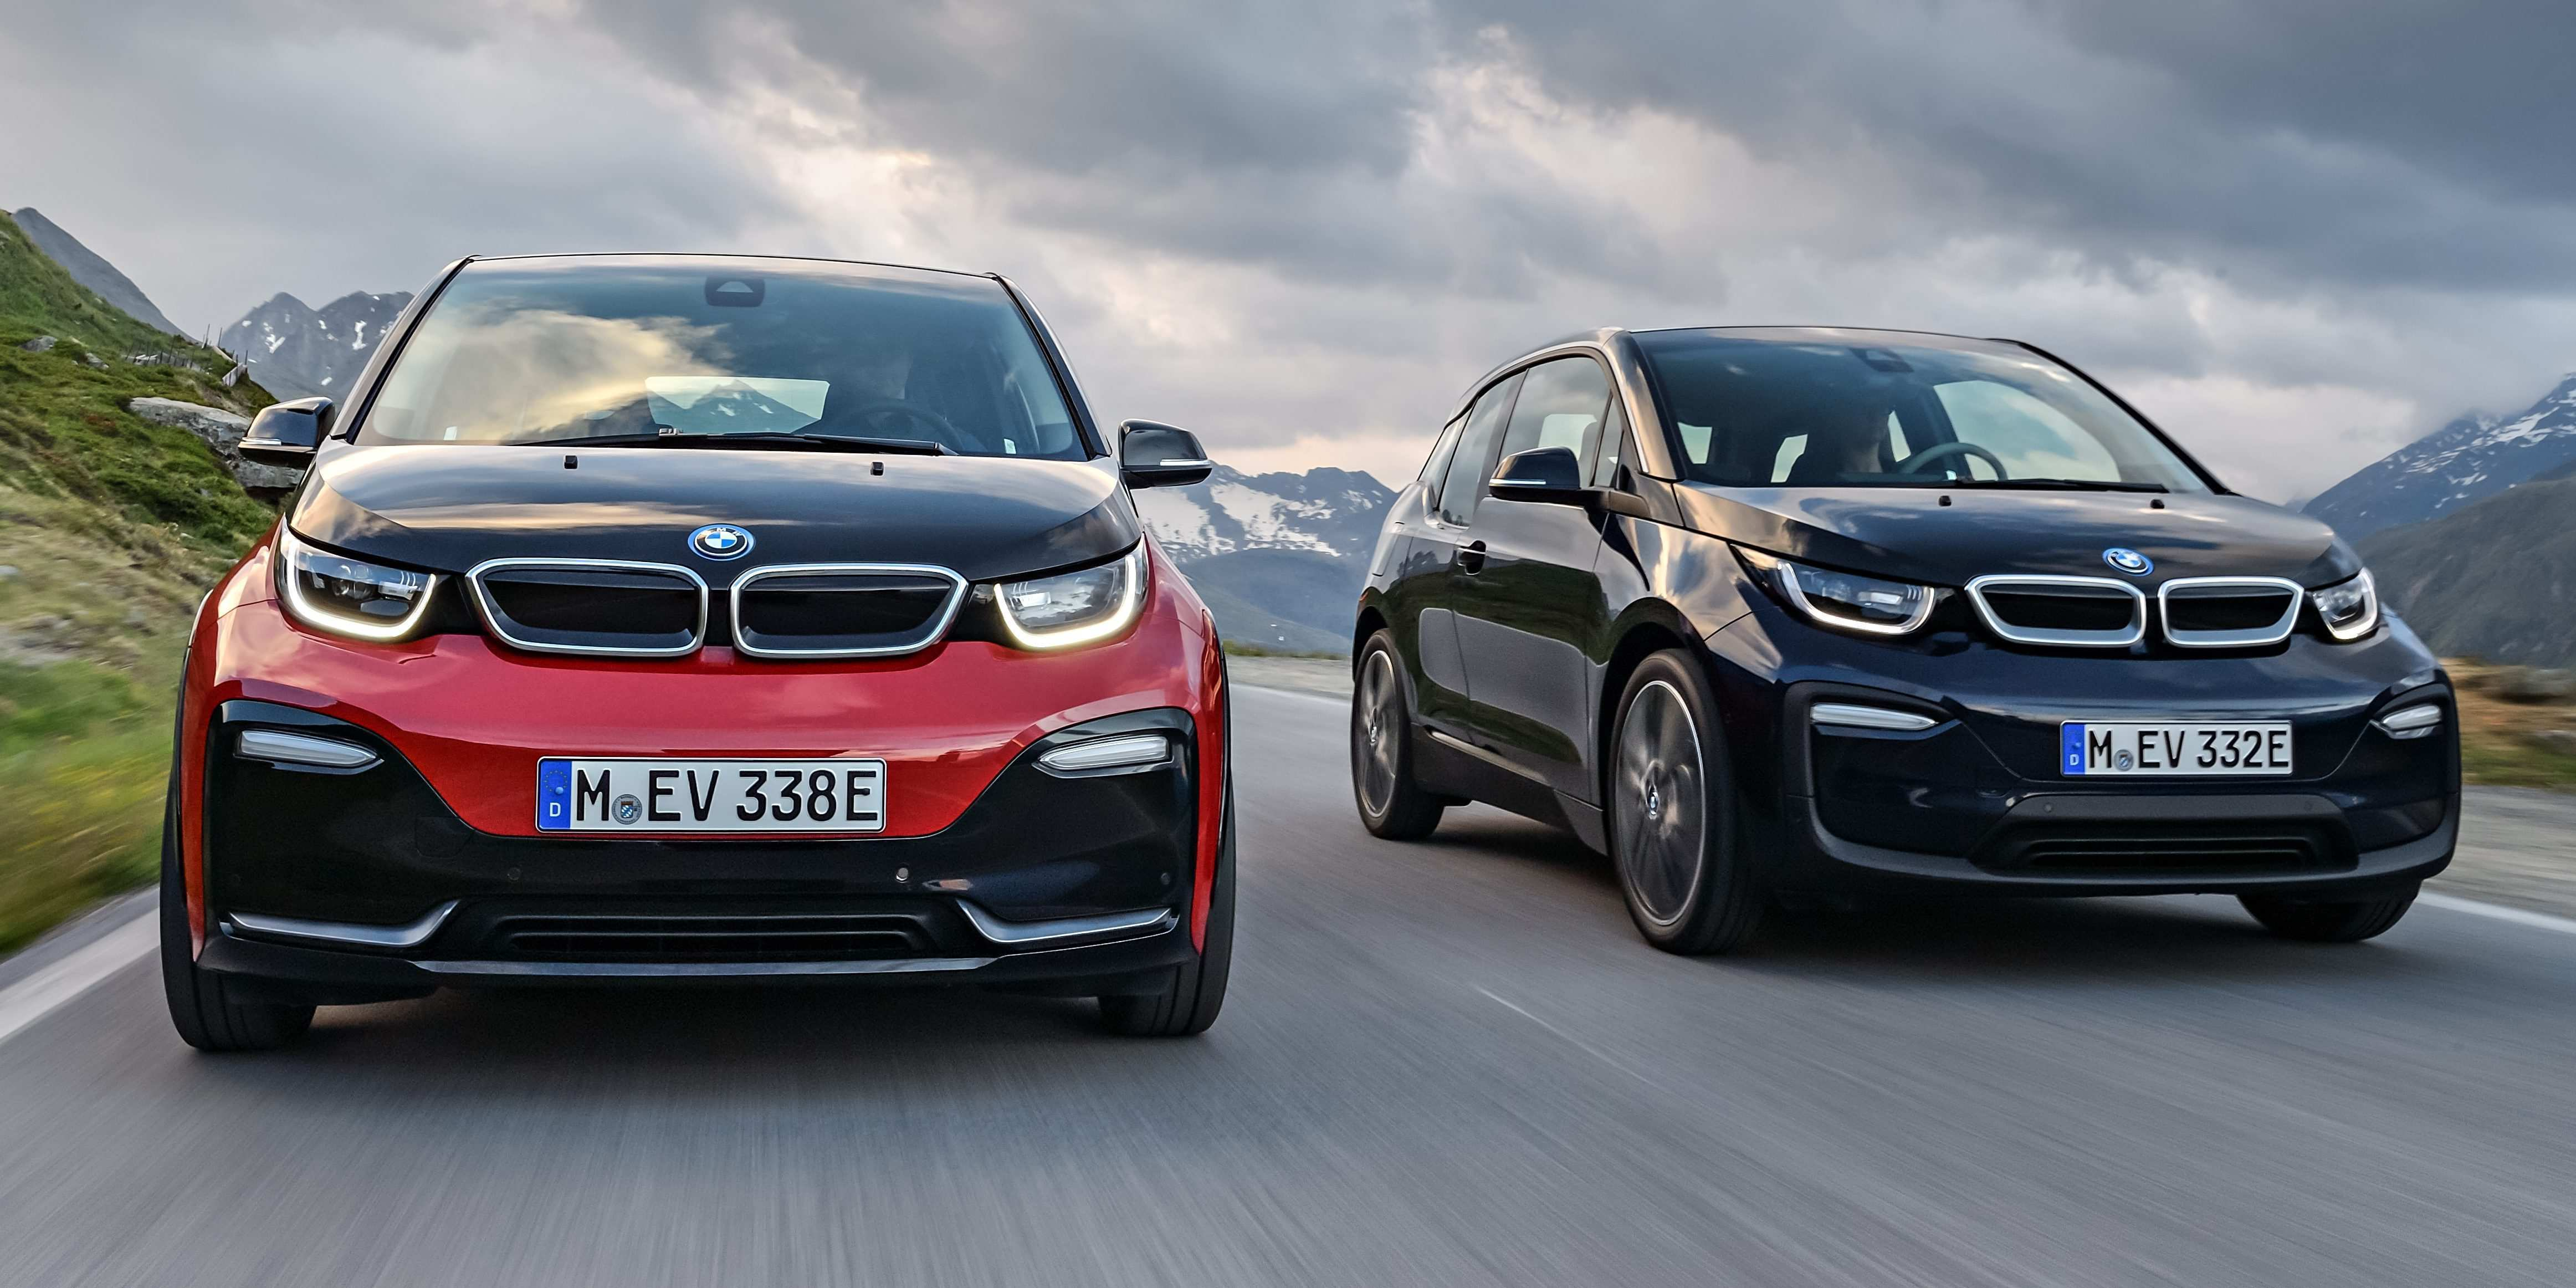 83 The Best 2019 Bmw Ev Redesign And Concept